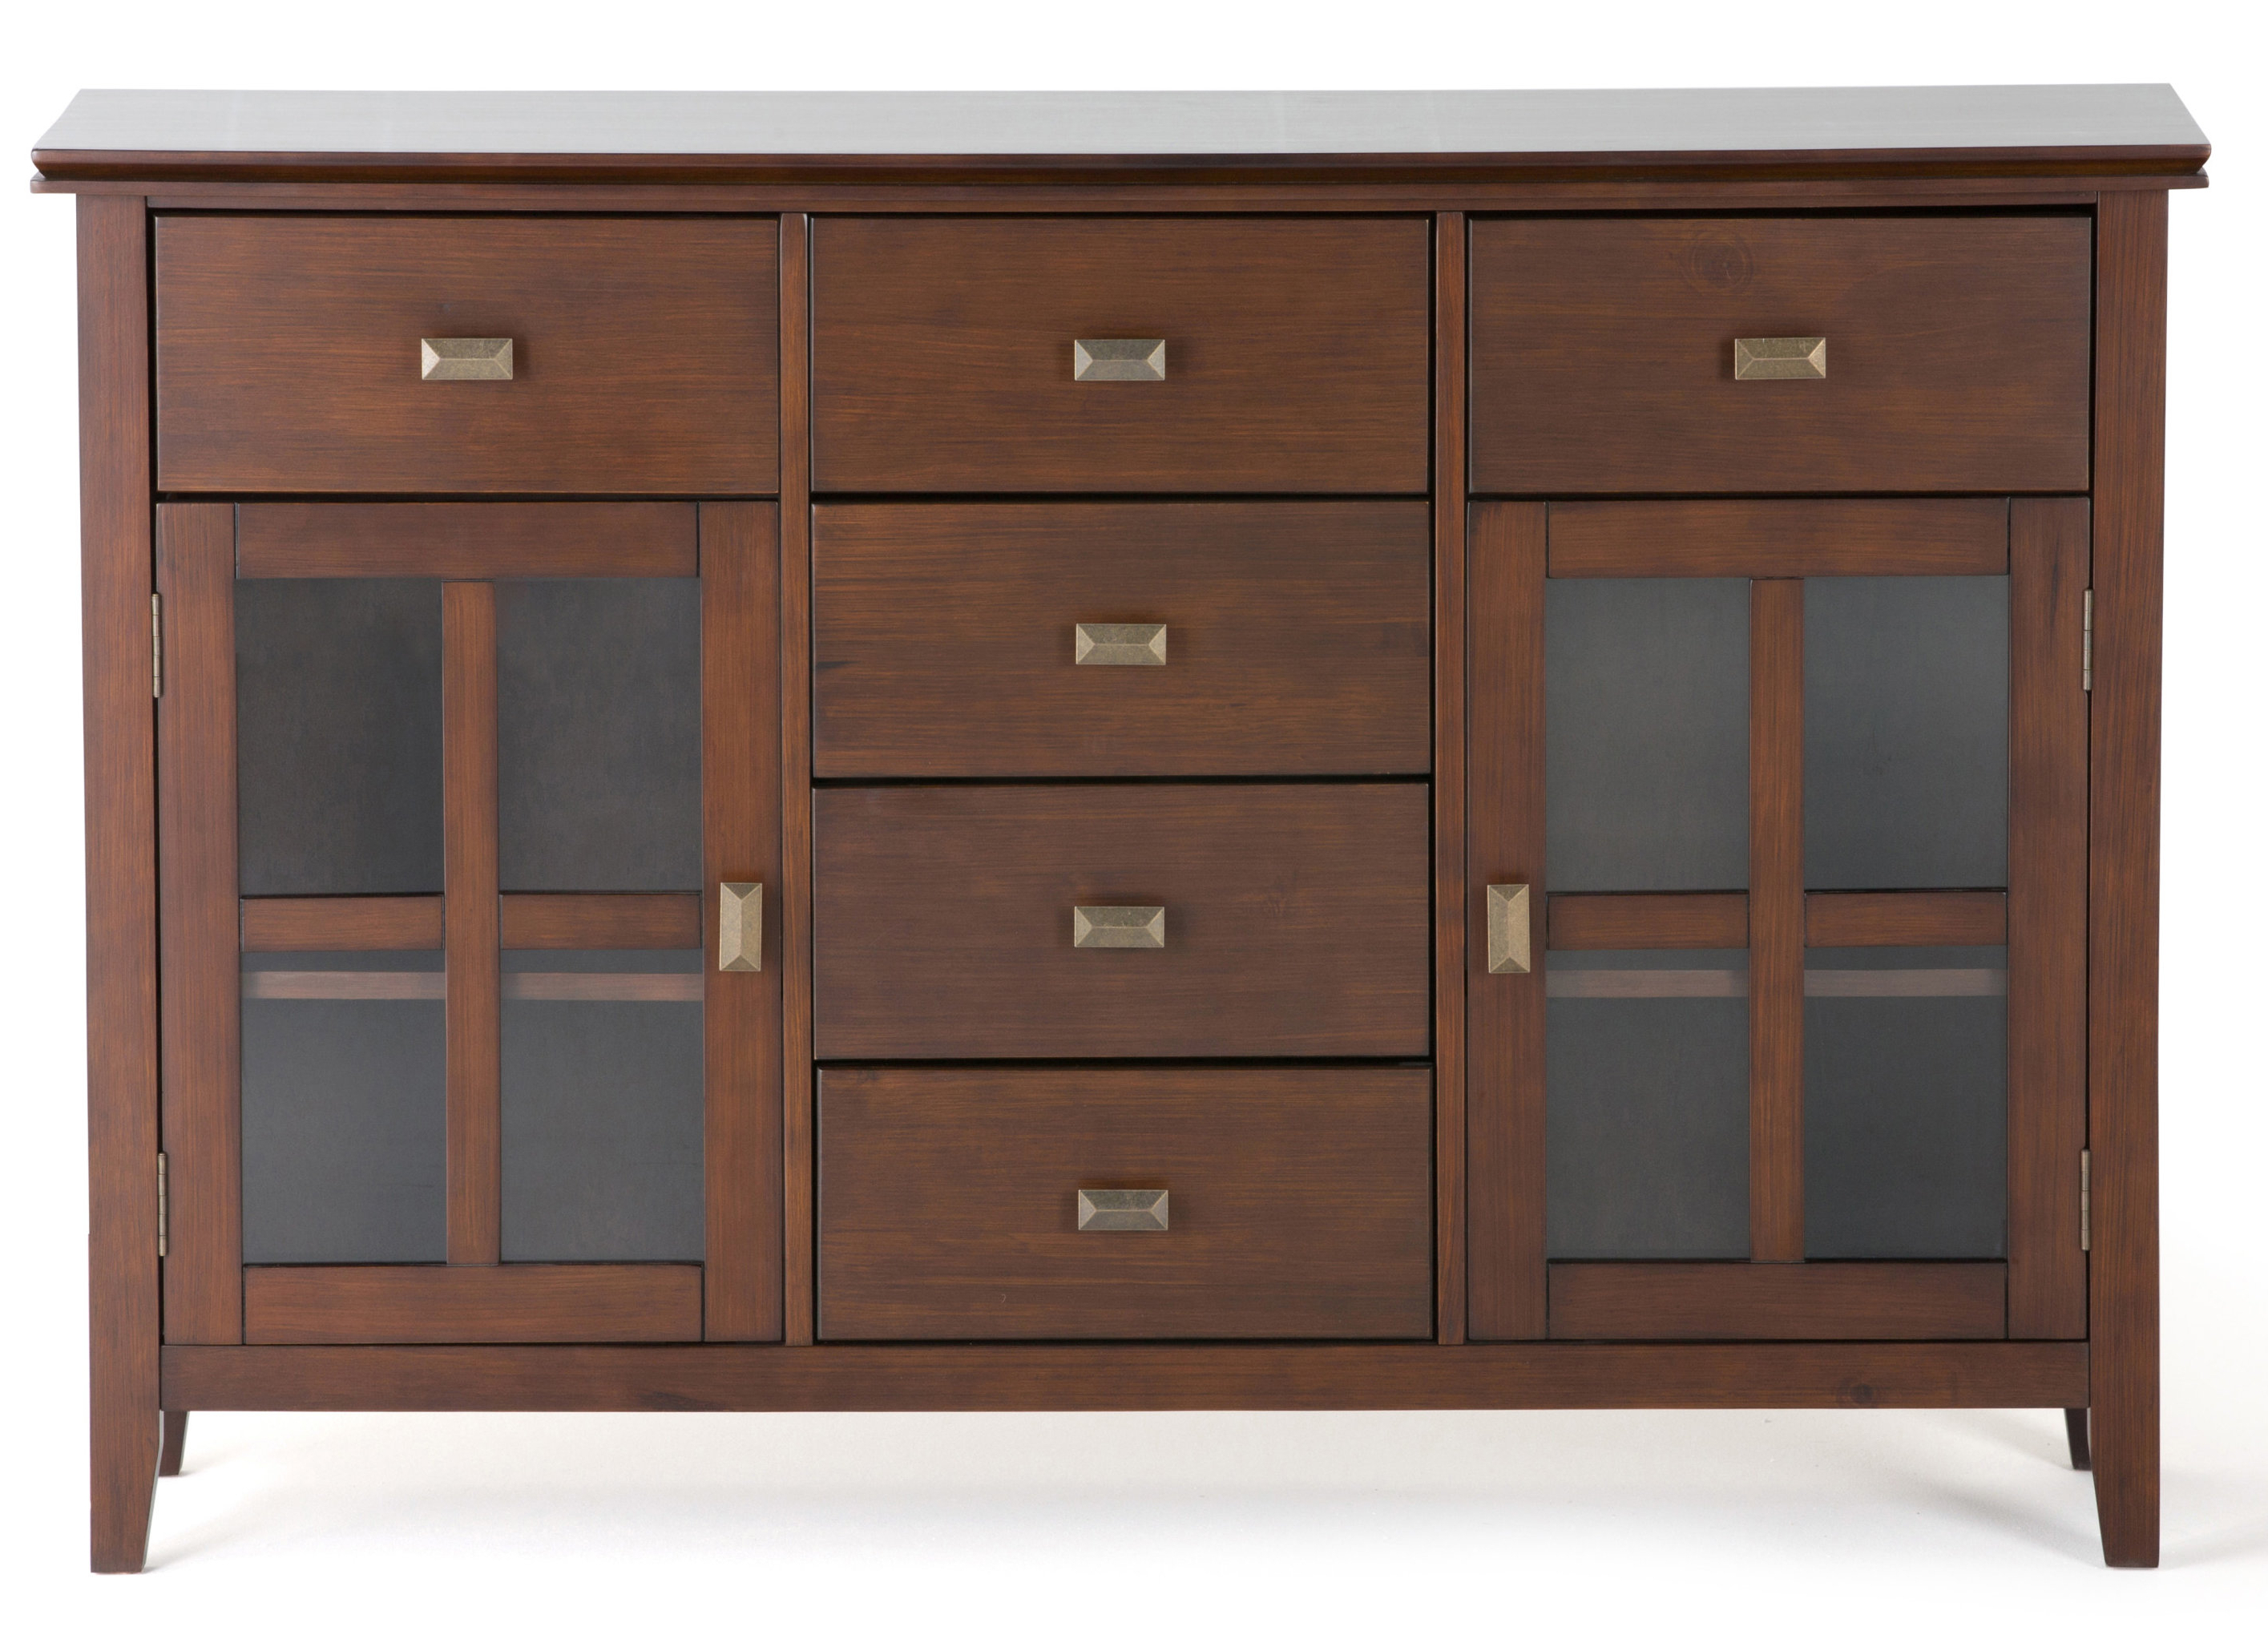 Wayfair With Dark Smoked Oak With White Marble Top Sideboards (Gallery 2 of 20)